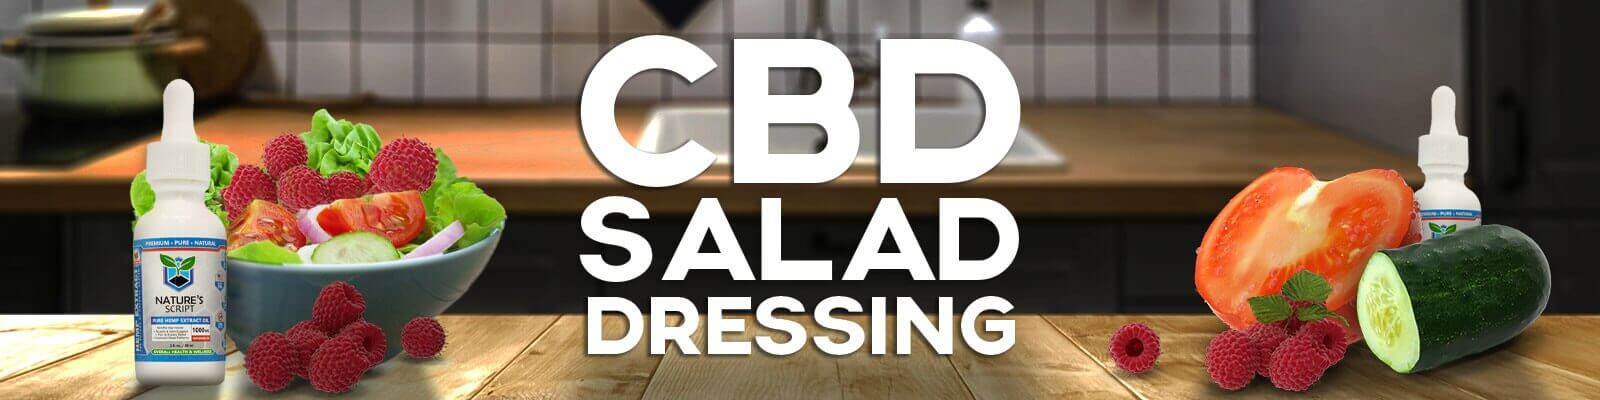 CBD Recipe - Raspberry Vinaigrette CBD Salad Dressing